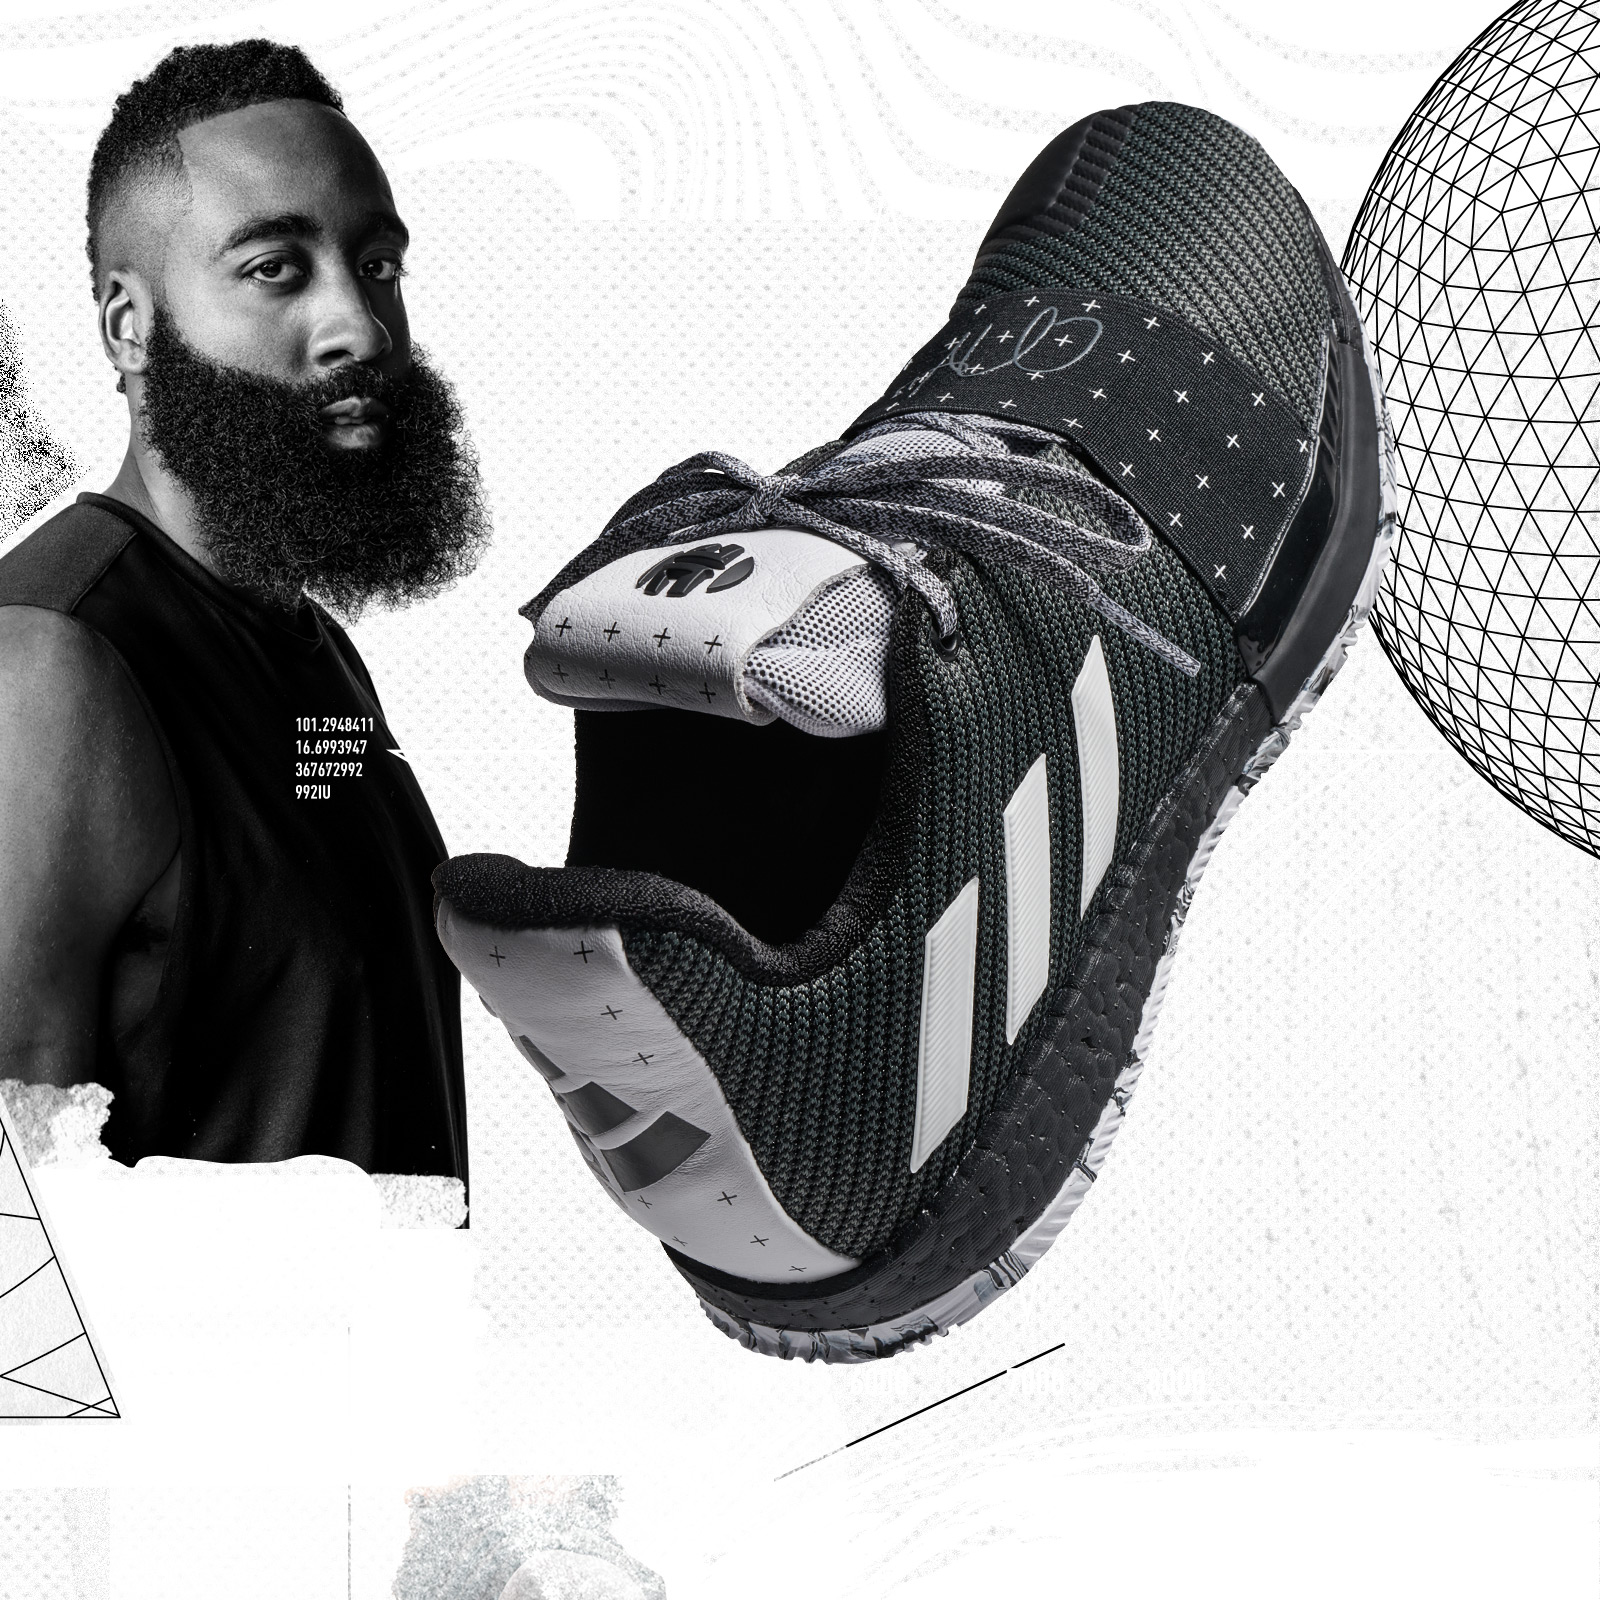 2e458fa35a0a Adidas announces James Harden s new signature shoe - Houston Chronicle